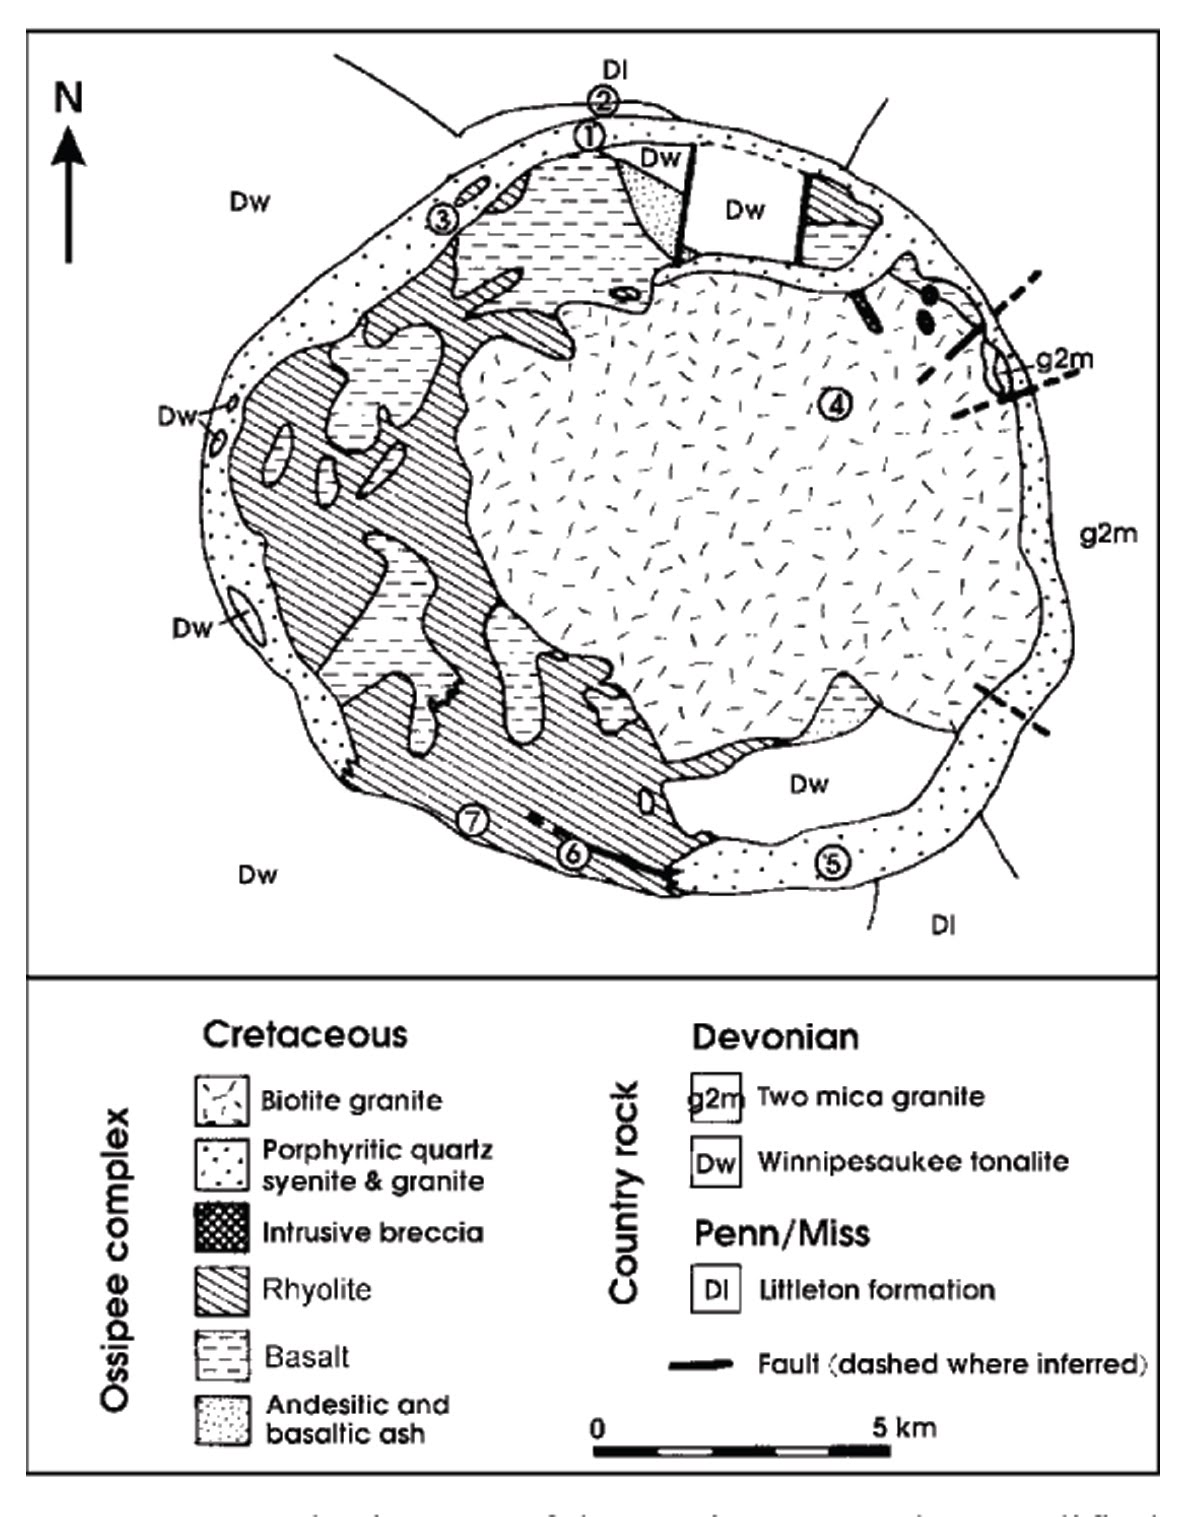 This is a bedrock geologic map of the Ossipee volcanic ring dike.  Notice where the basalt is formed, around the granite, in a partial ring, http://whitemountainsojourn.blogspot.com/2010/05/moat-mountain-moat-volcanics-look-at.html.  Granite forms 3 to 5 miles below the surface, that means all of the existing granite outcrops on the surface today, whether on an exposed mountain top or in a road cut, used to be that far below the surface, http://www.nhgeology.org/jurassic.htm